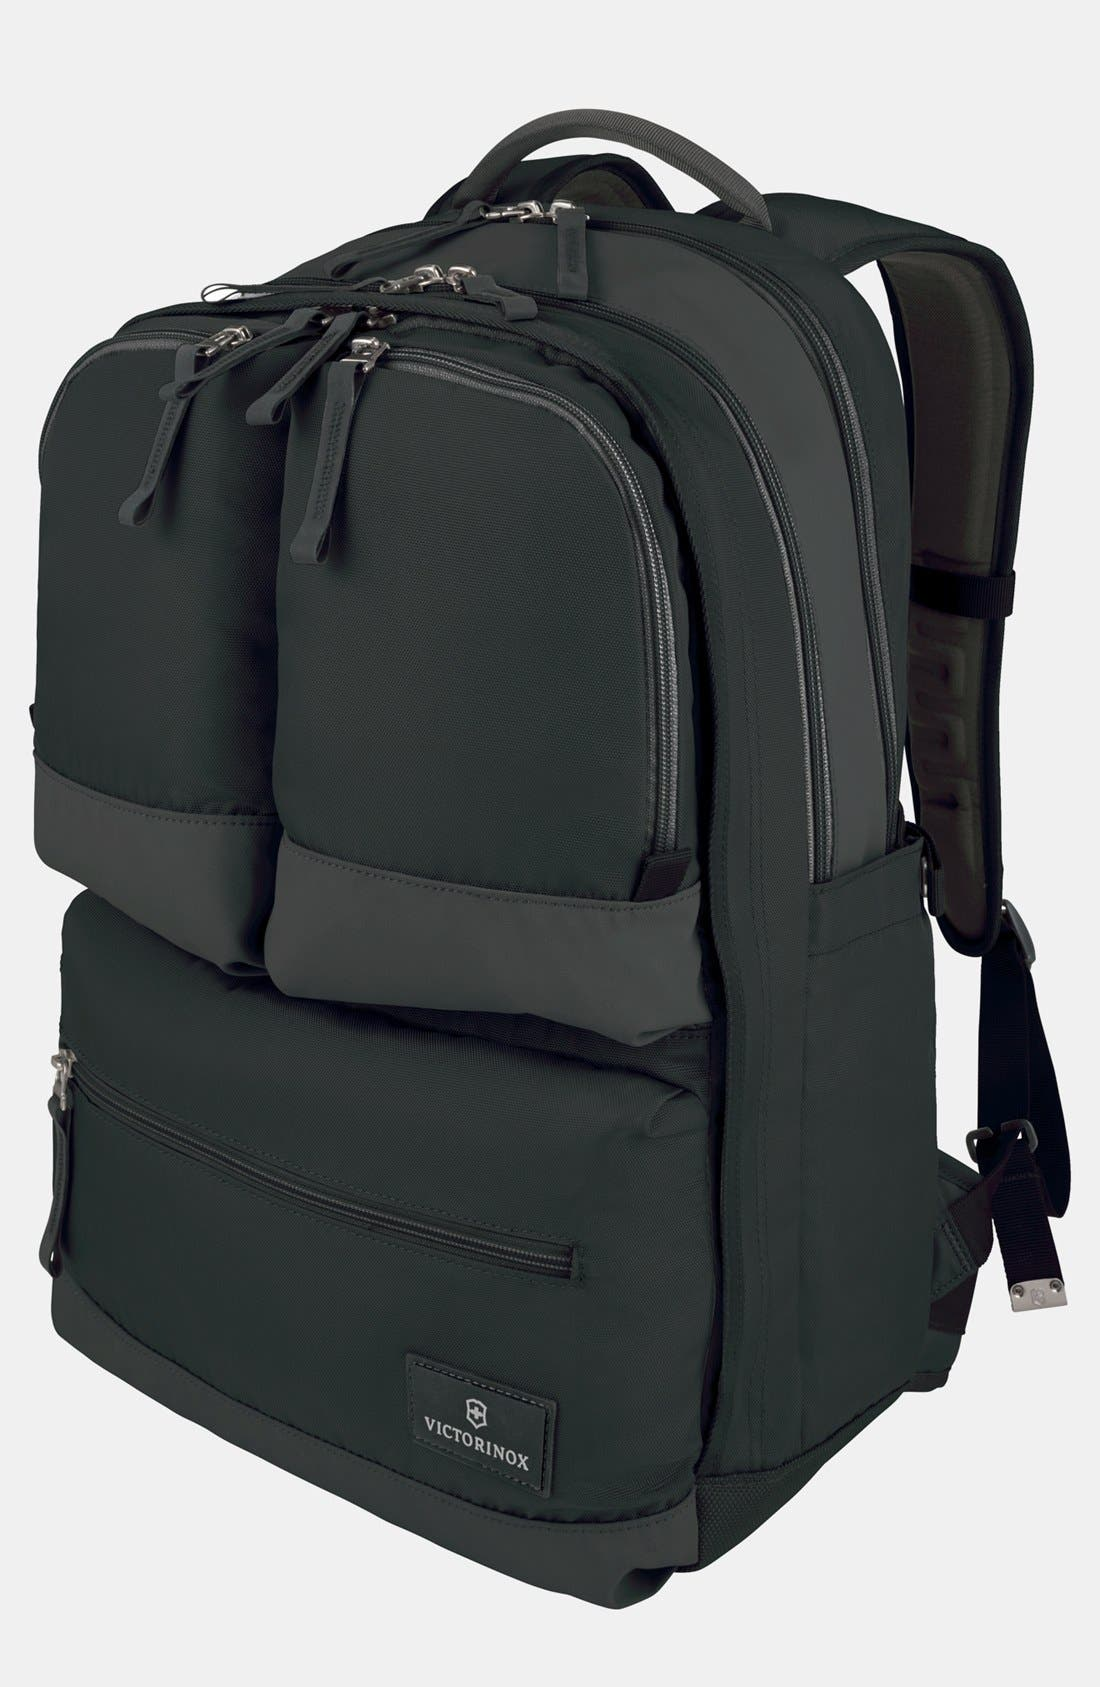 Dual Compartment Backpack,                         Main,                         color, 001